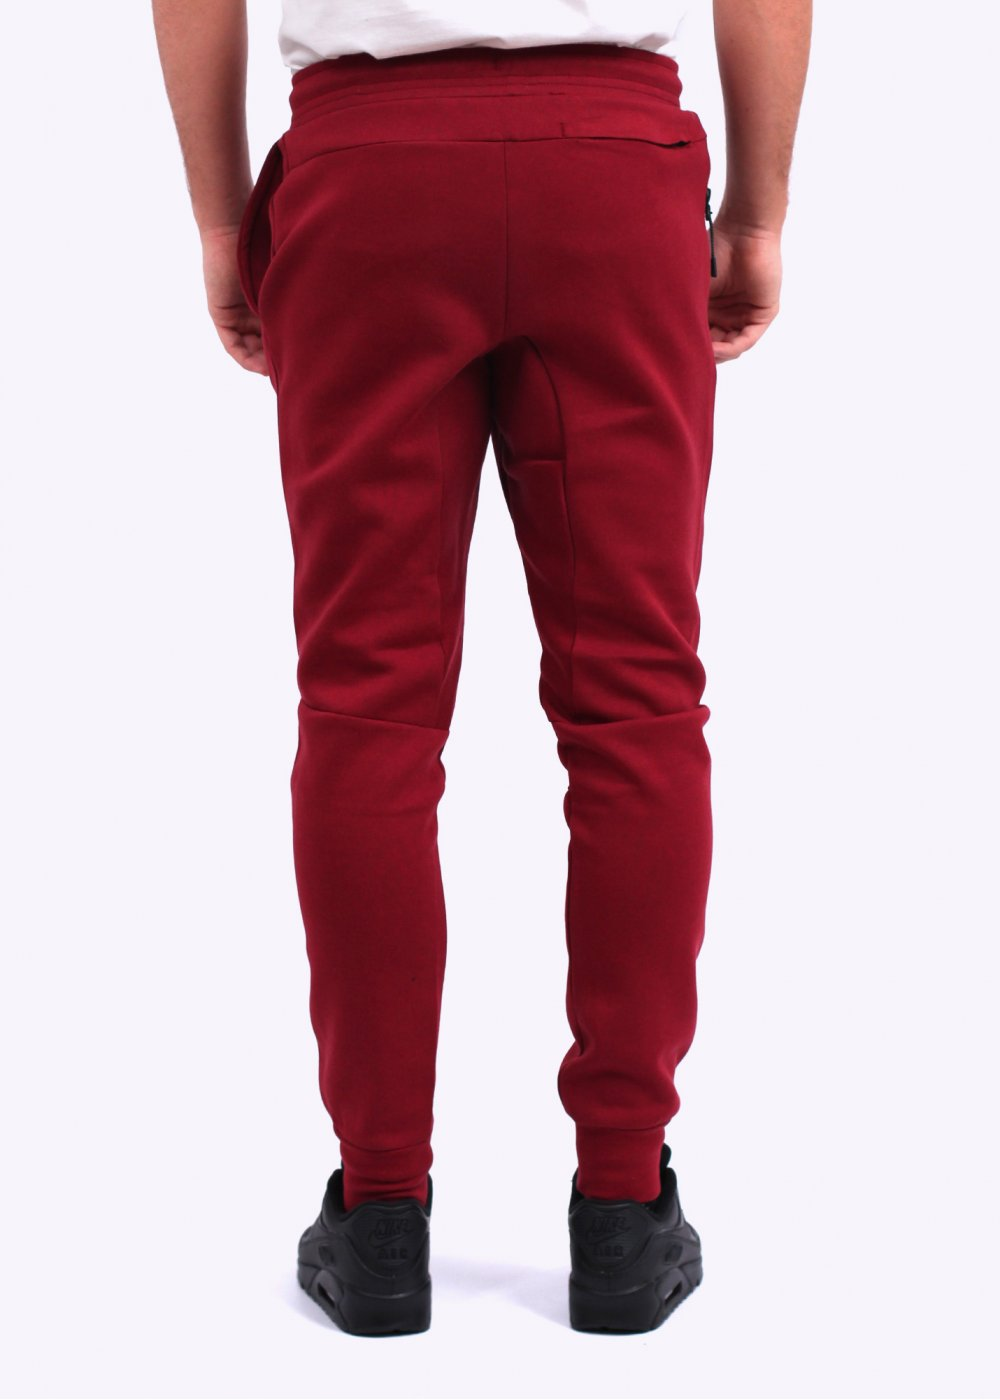 Shop for and buy burgundy pants online at Macy's. Find burgundy pants at Macy's.